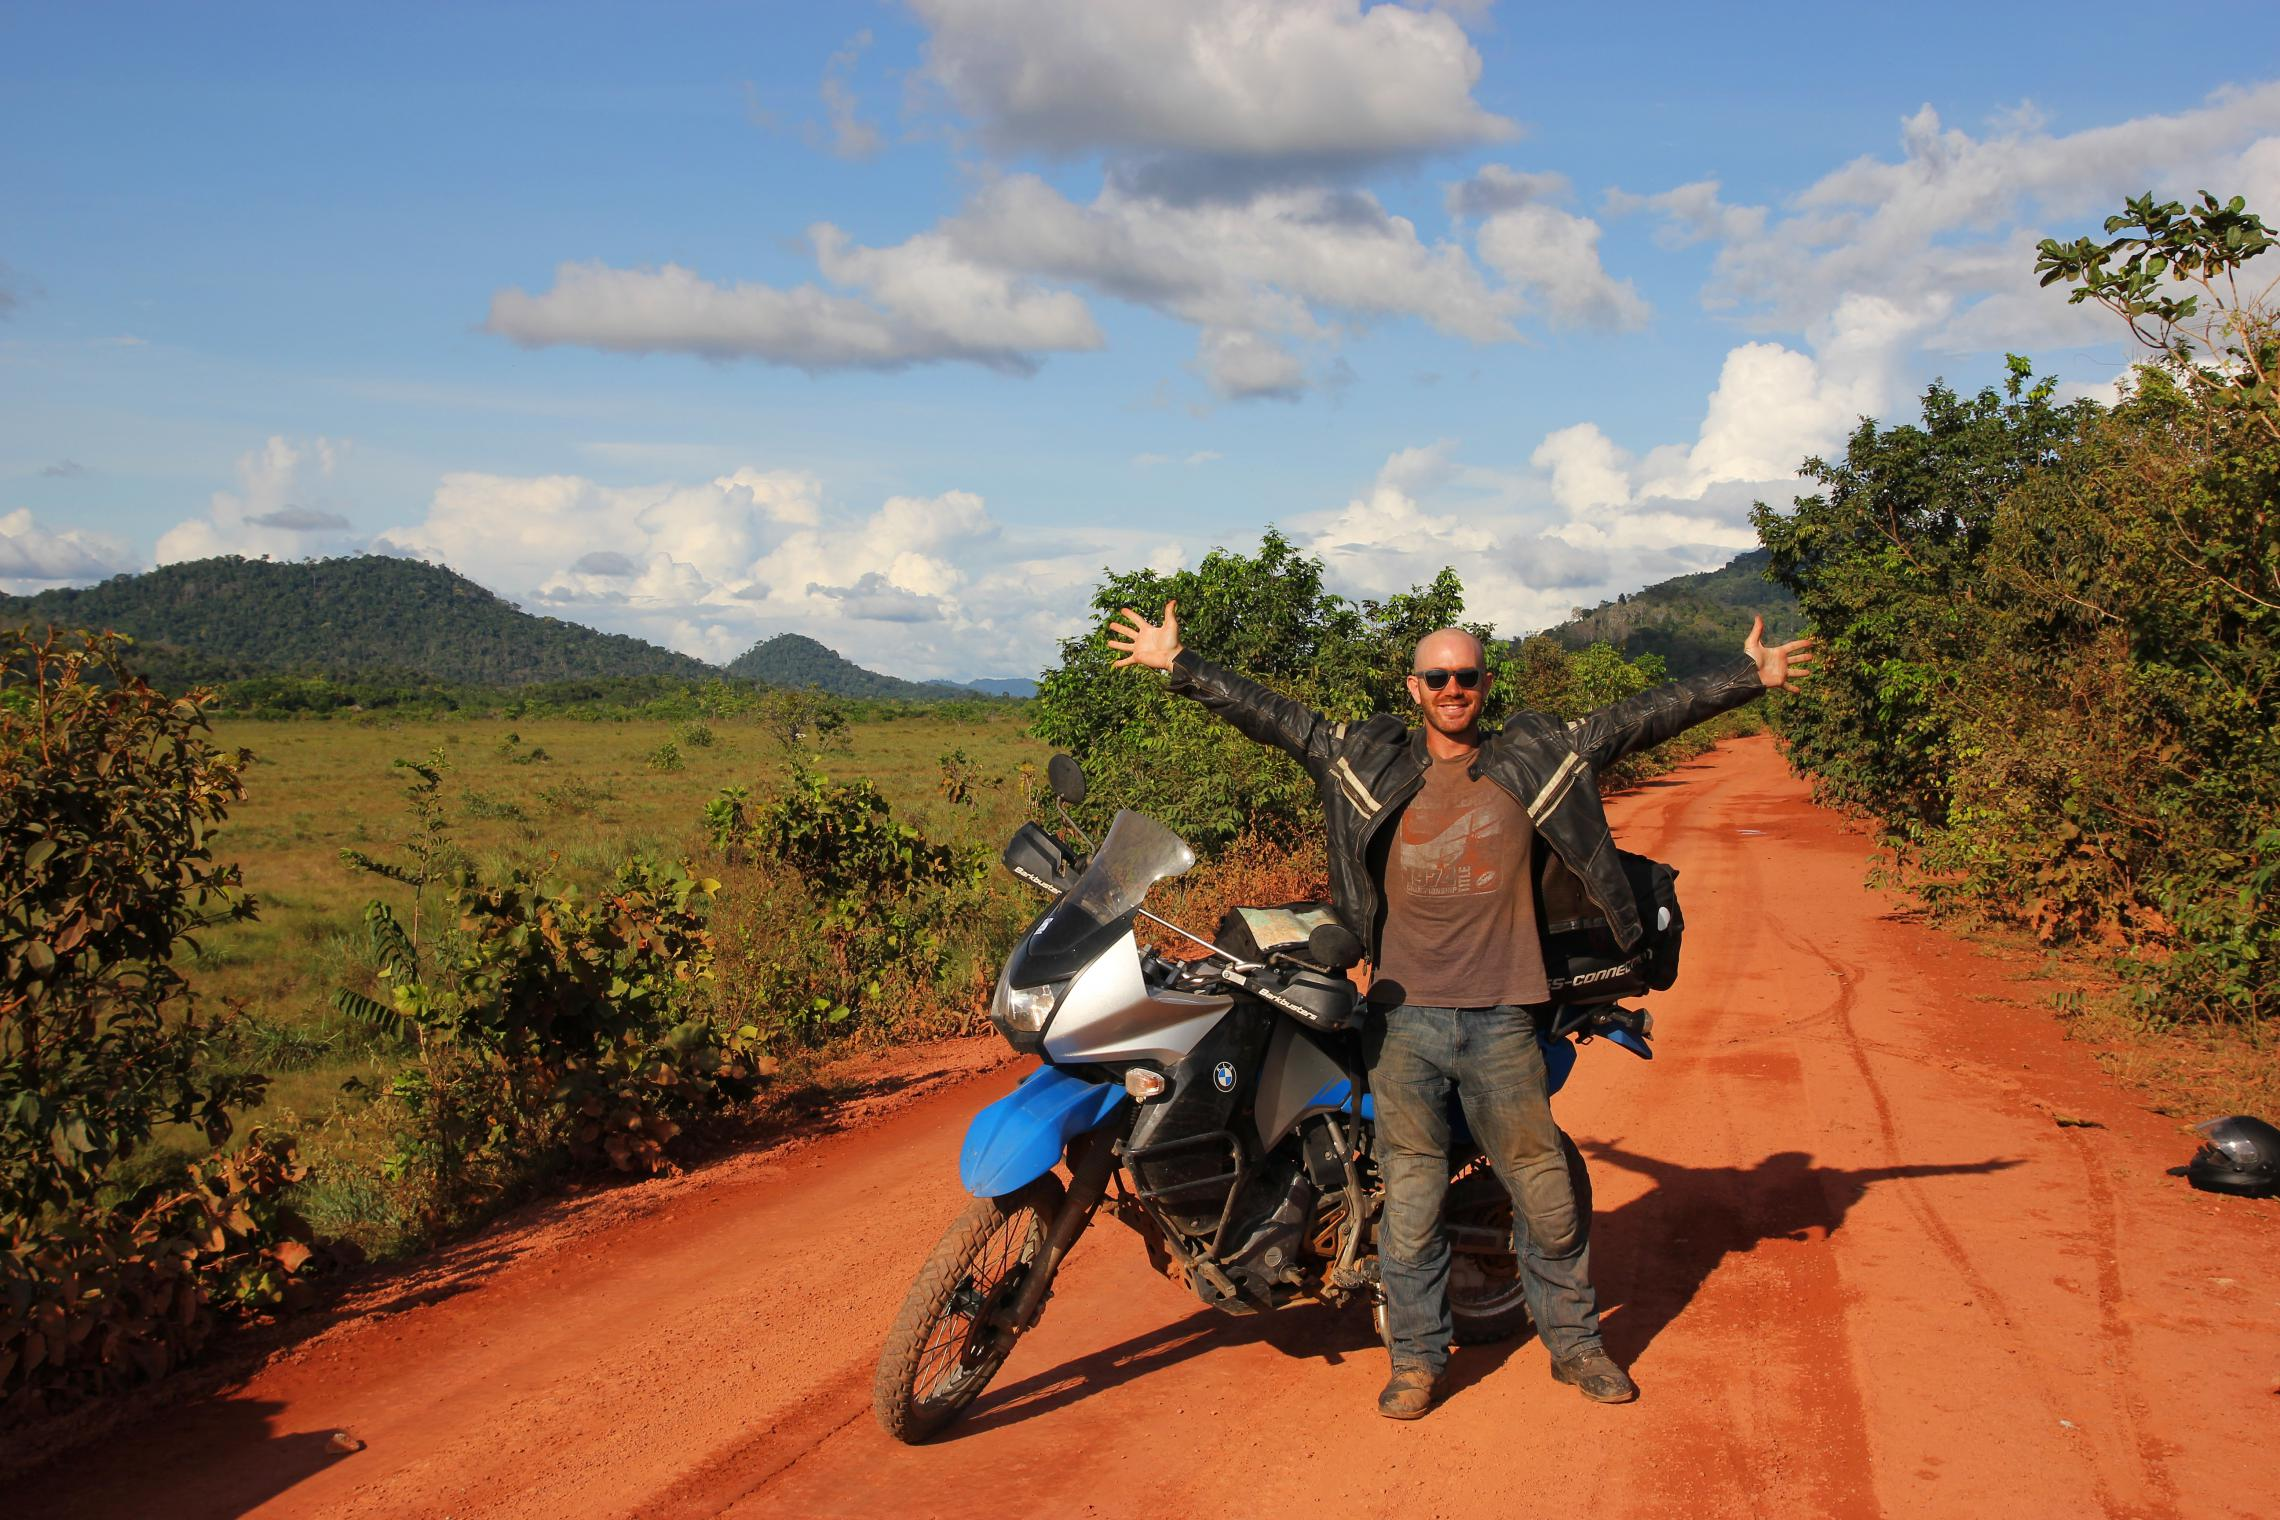 10,000 miles - The road to Annai, Guyana -- This dirt road is actually the big international highway through the Guyanese interior. It was still fun and games before we entered the rainforest.